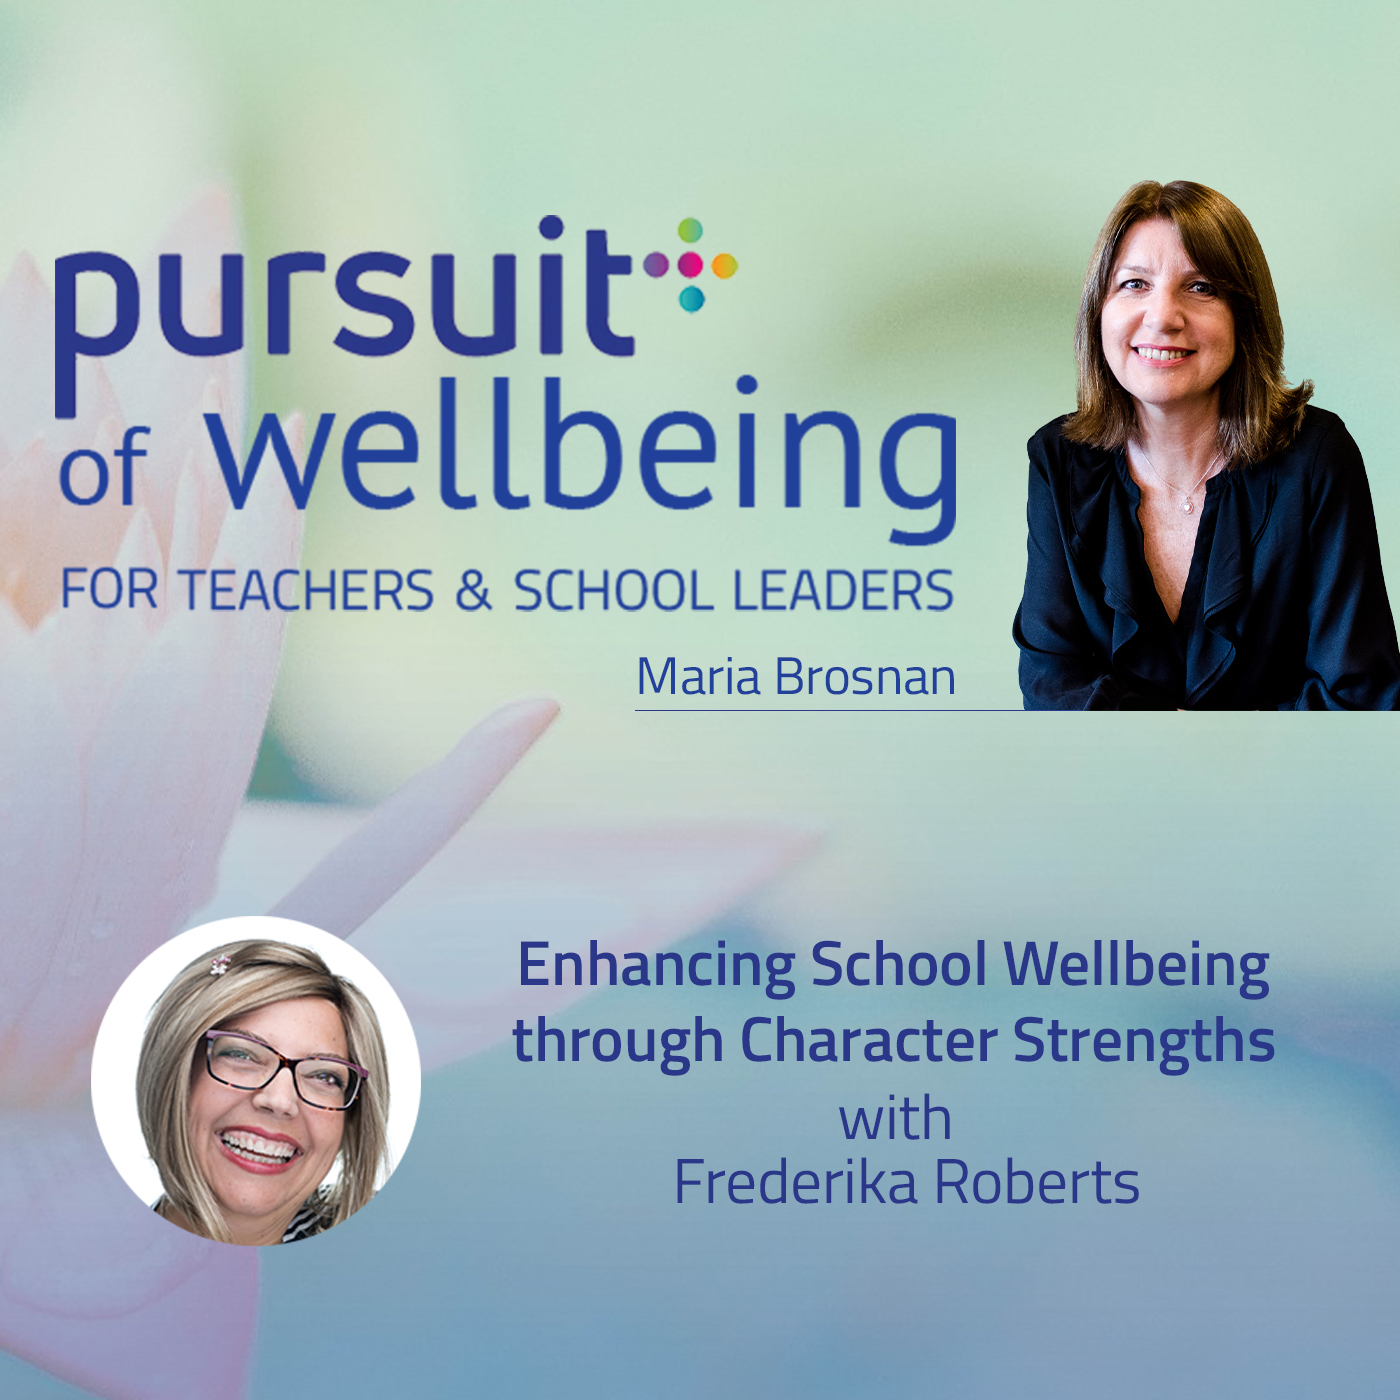 Enhancing School Wellbeing through Character Strengths with Frederika Roberts